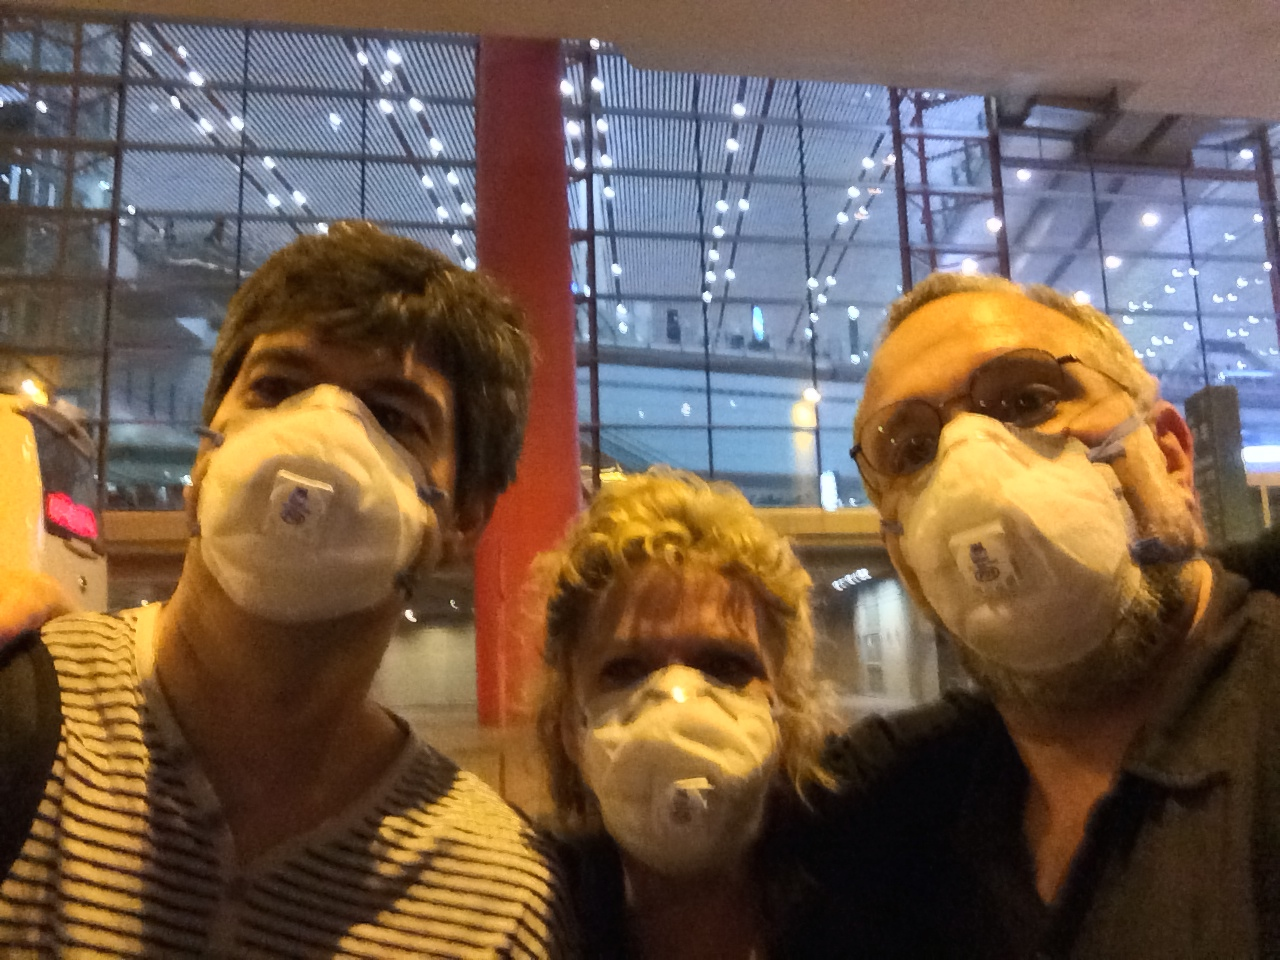 Left to right: Chris Rosser, Rhonda Larson and Eliot.  I wish this was a just for fun picture. Unfortunately this is the reality in Beijing most days. I am saddened to say this is the reality of the majority of China now.